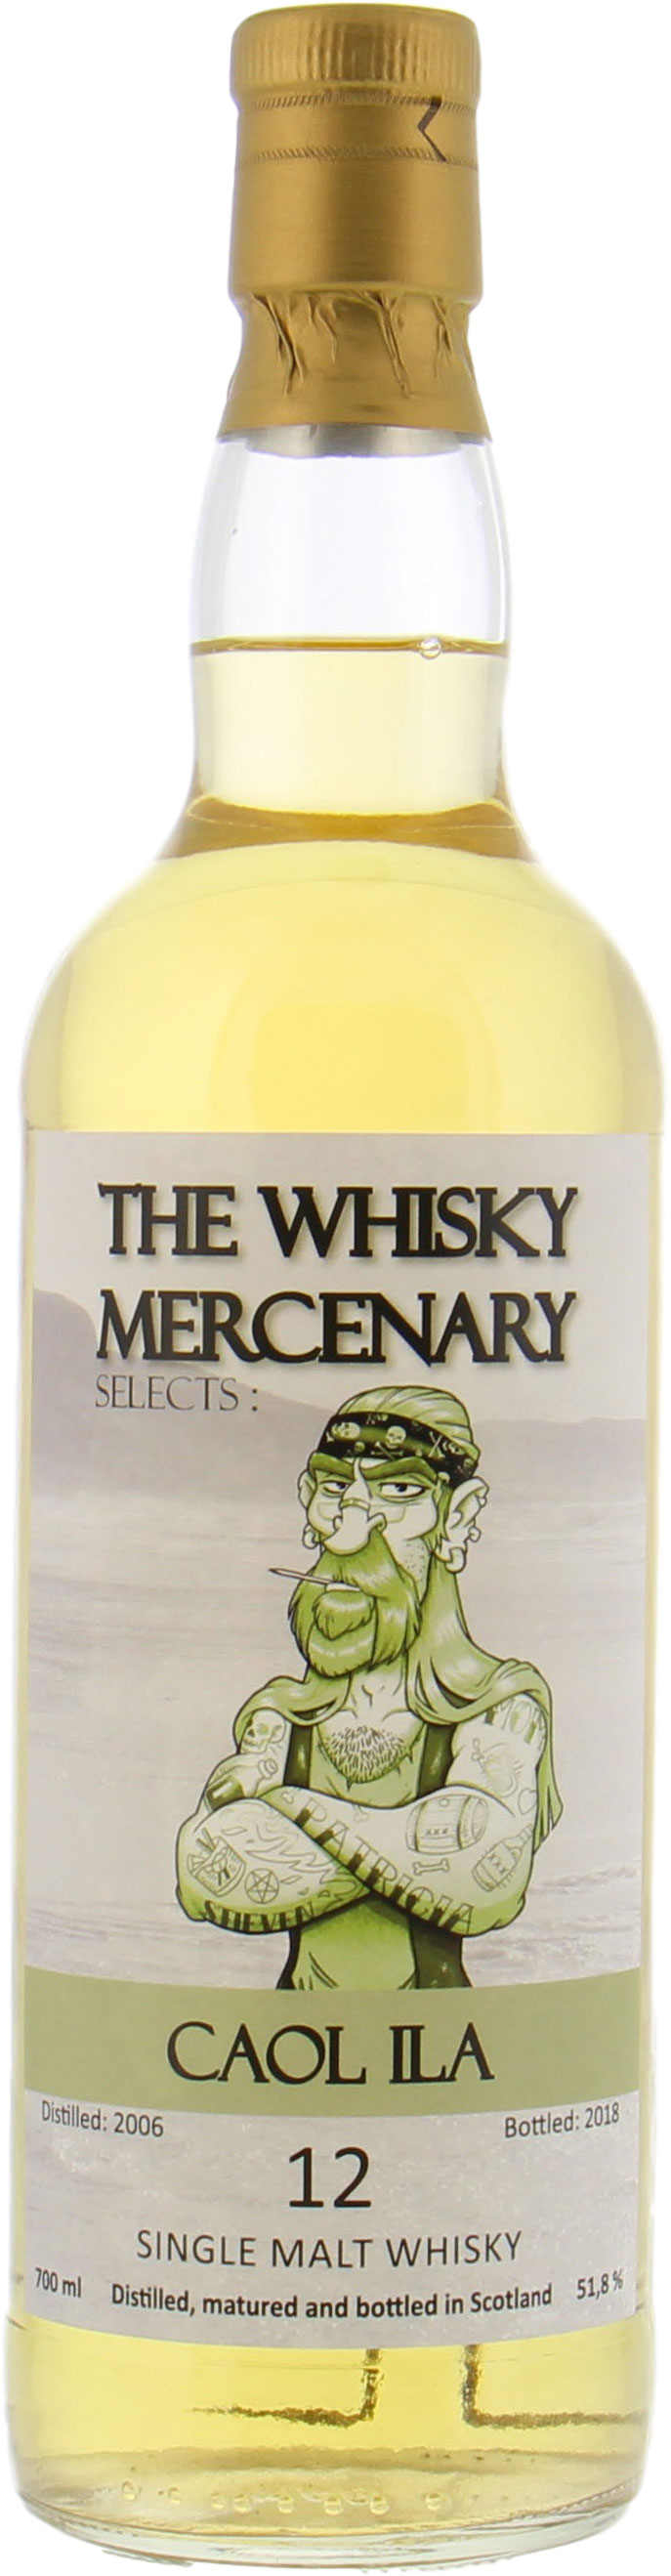 Caol Ila - 12 Years Old The Whisky Mercenary 51.8% 2006